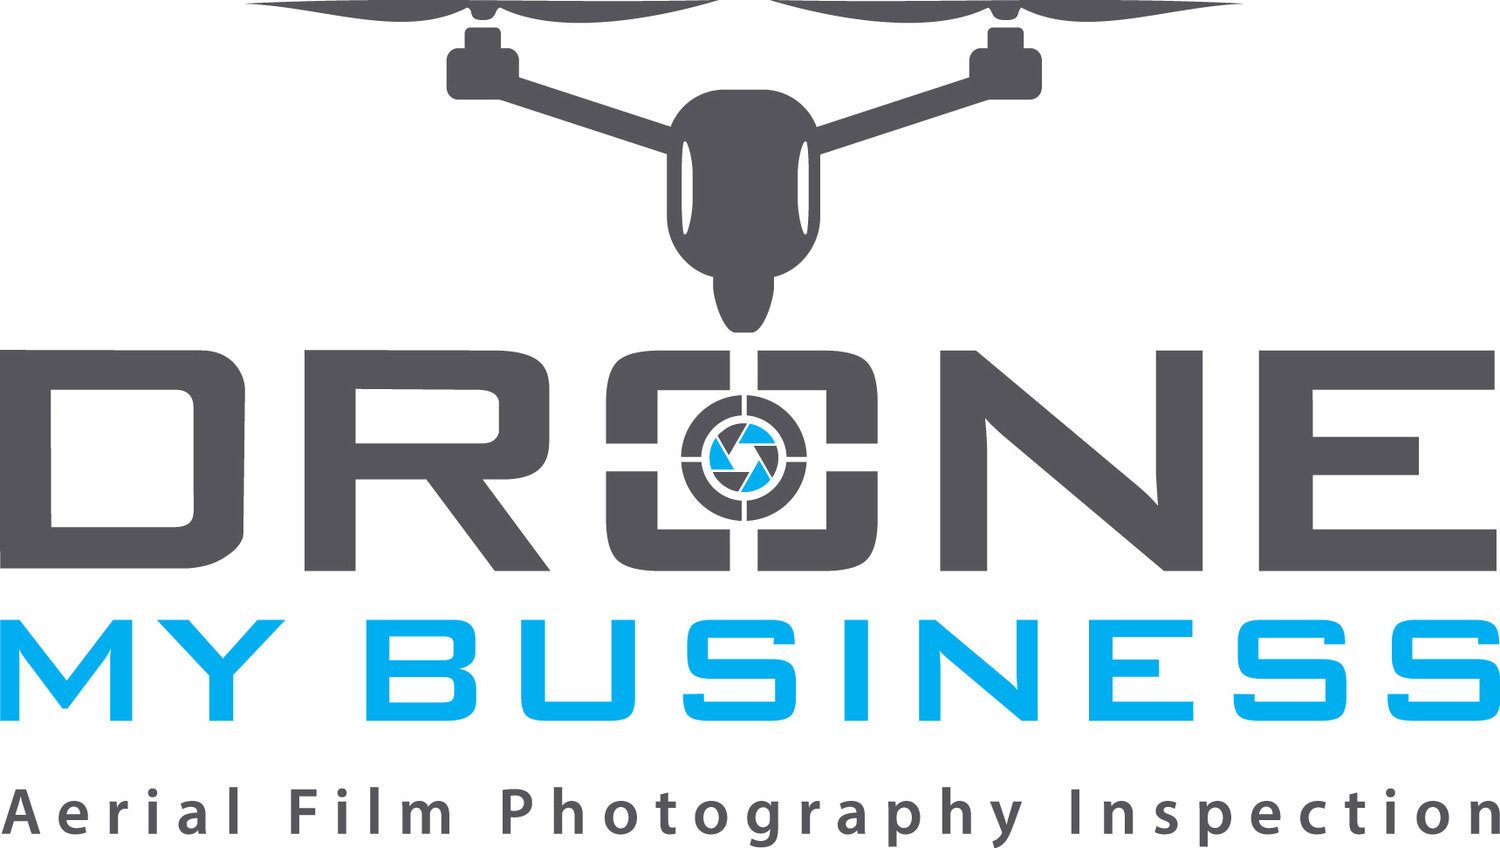 Drone My Business Ltd Aerial 4K filming photography, building & industrial roof surveys inspection services